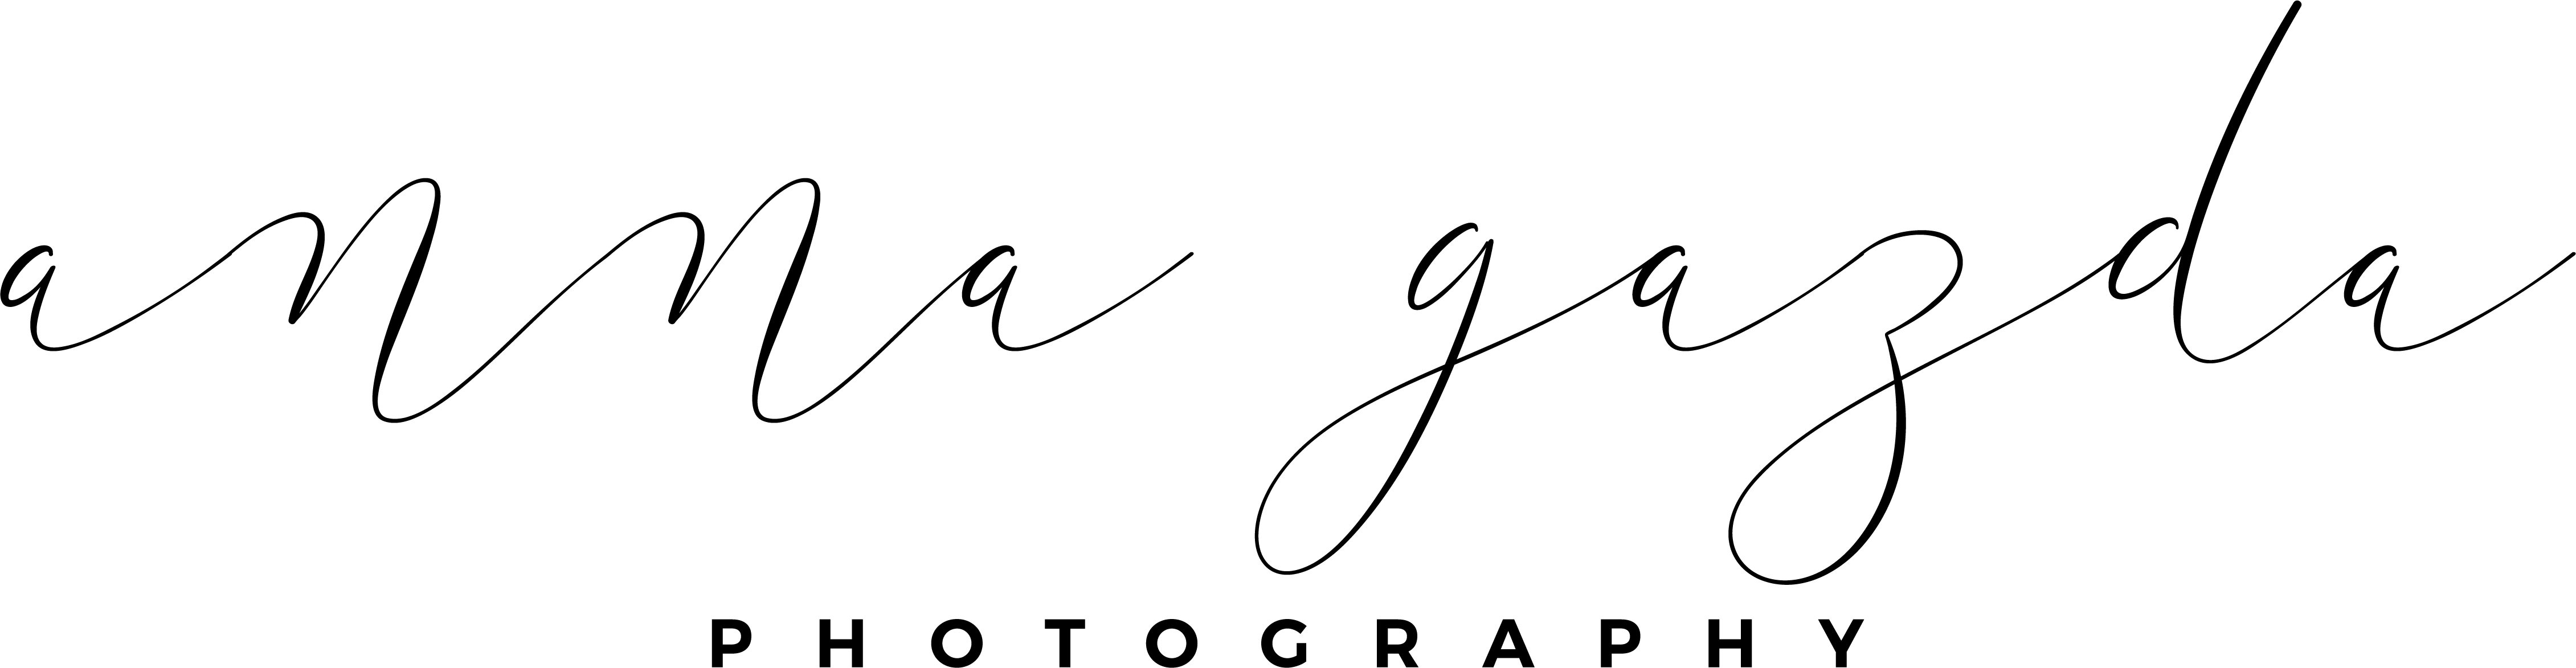 Documentary Wedding Photographer Spain Marbella Malaga and Portrait Photographer Marbella